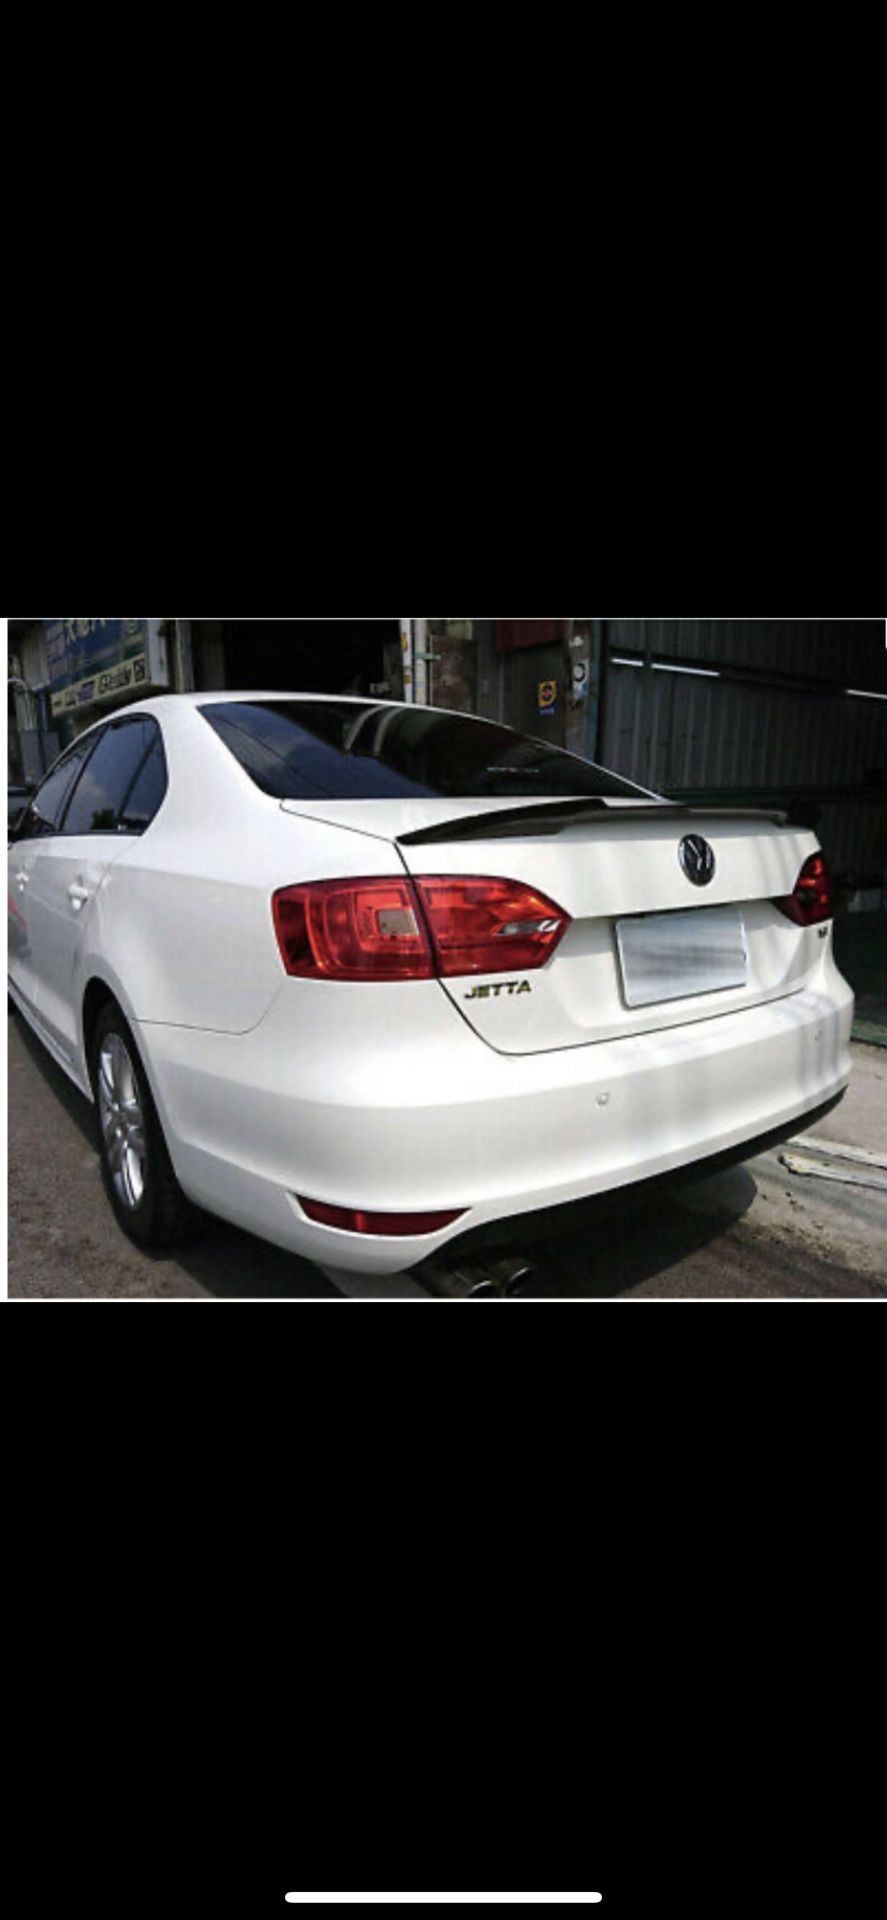 2011-2014 Volkswagen Jetta Headlights and Taillights (will sell separately)